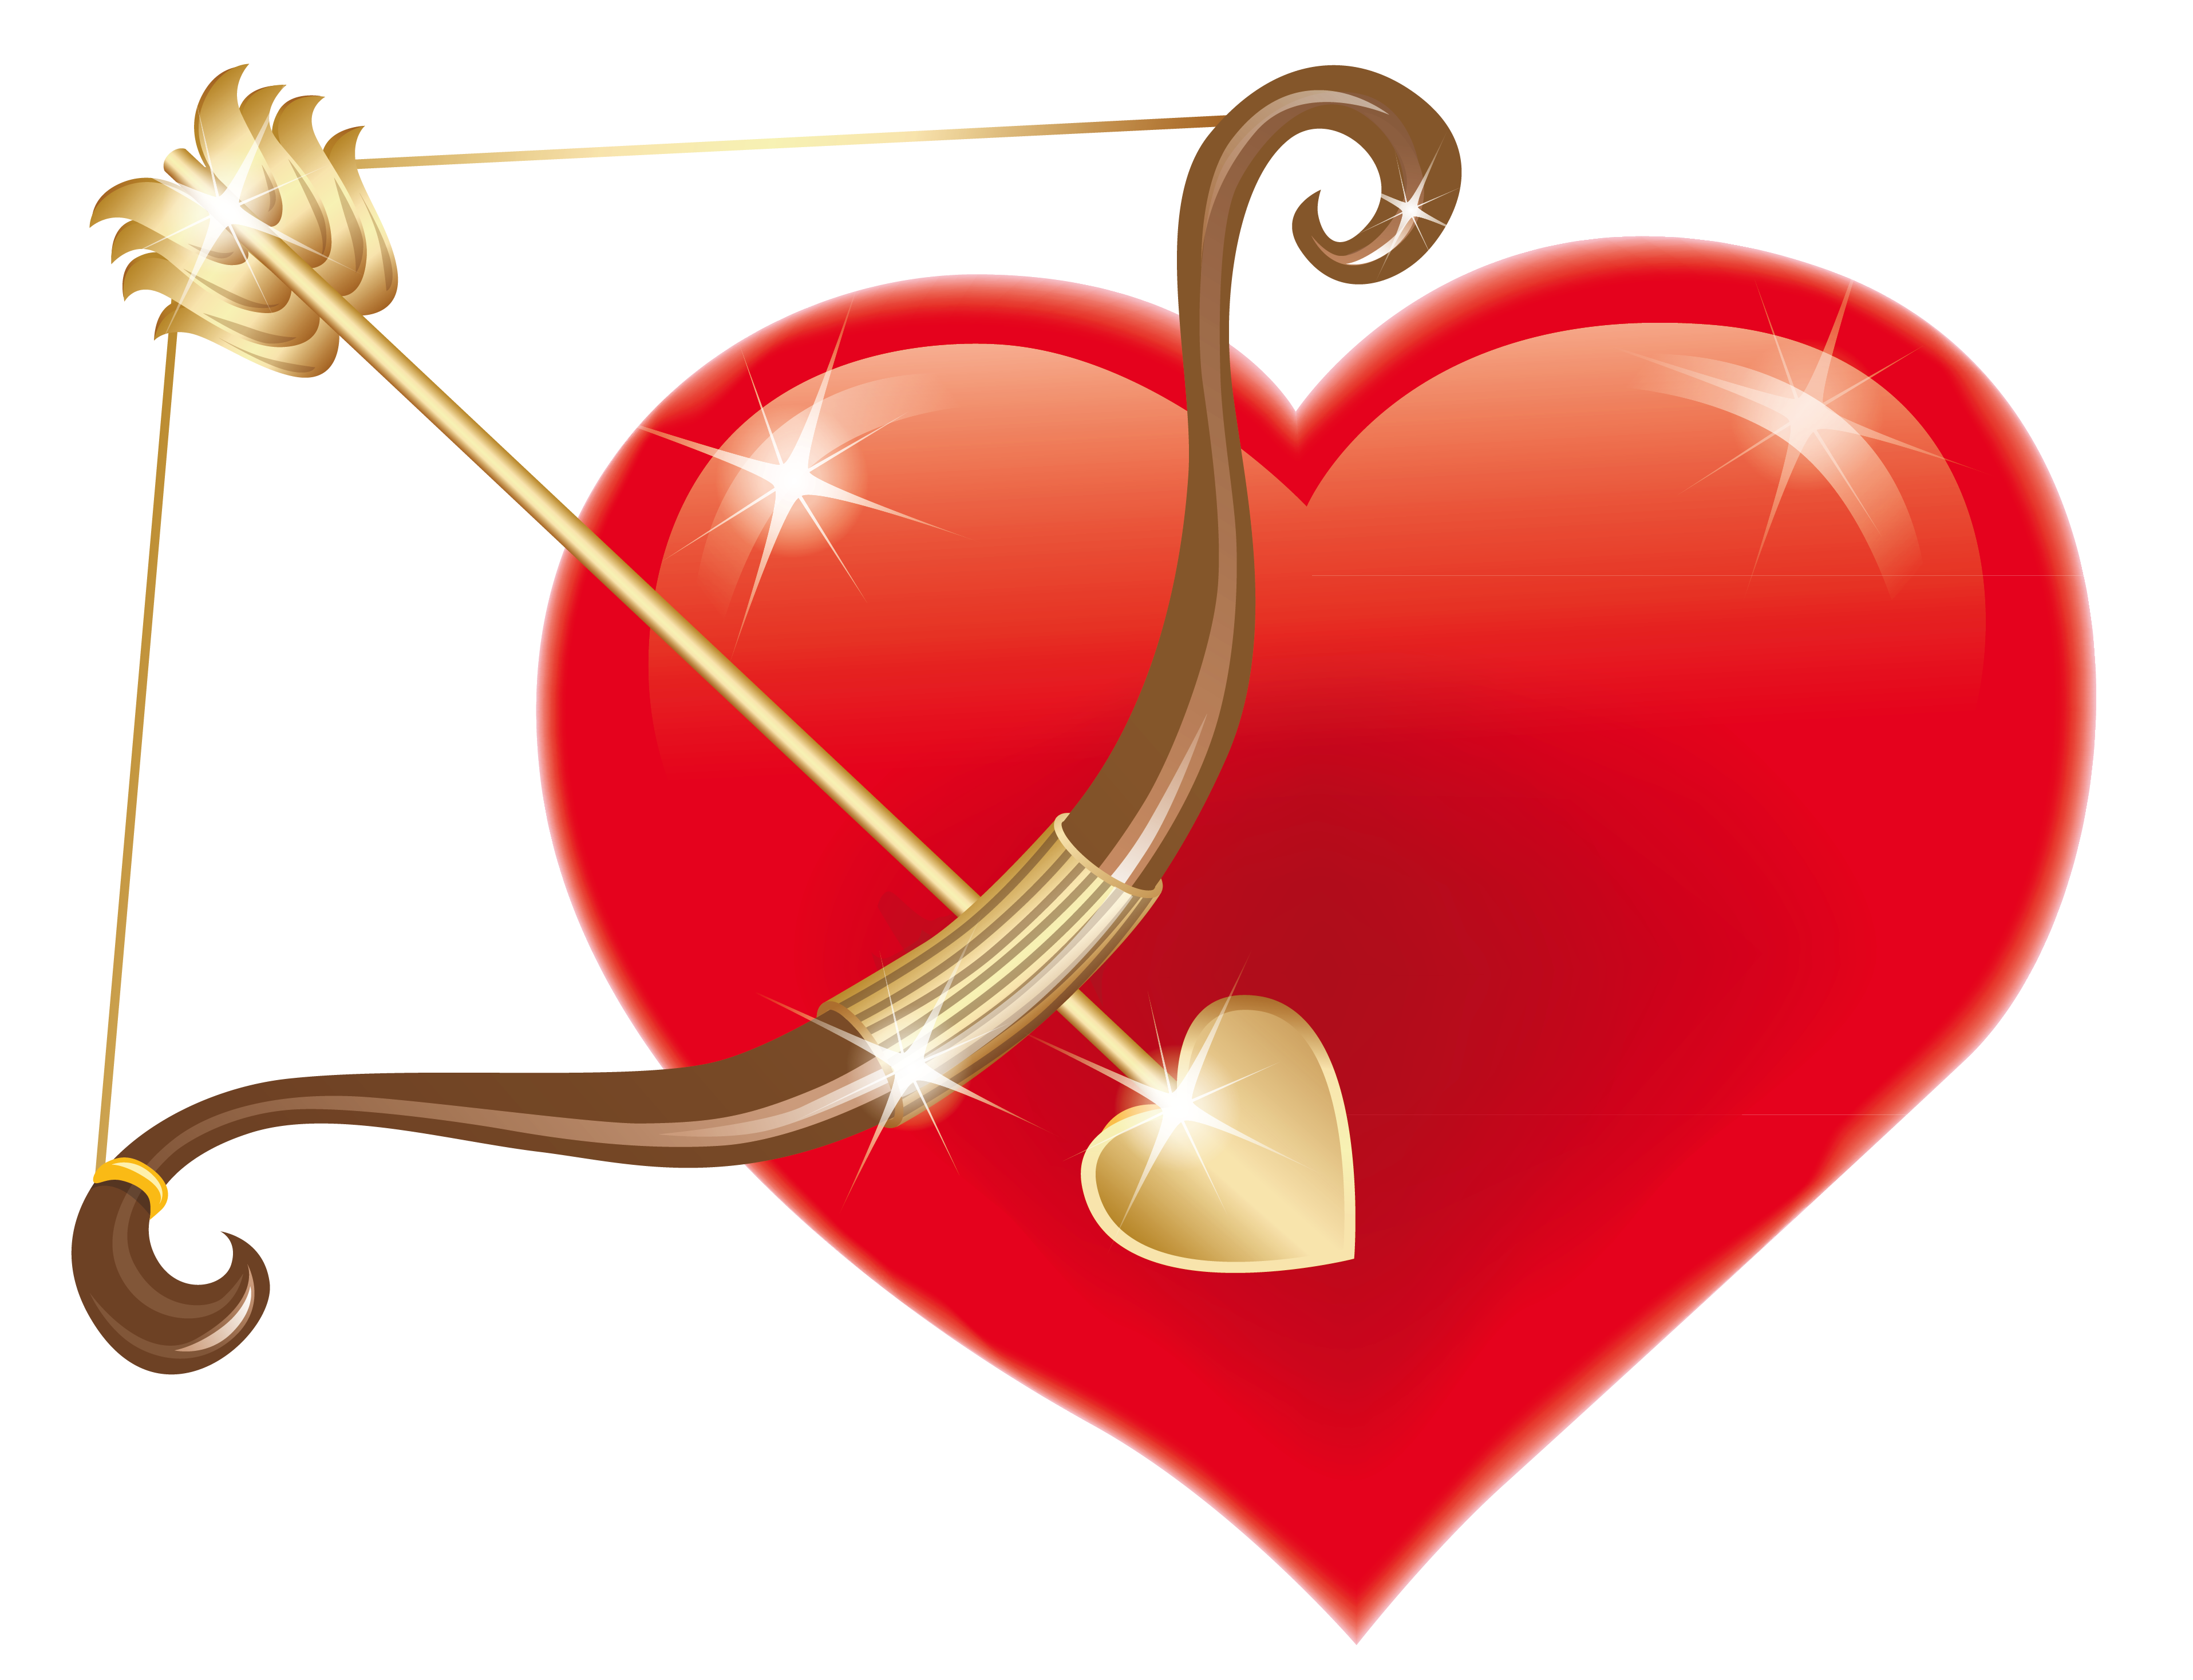 Heart with cupid bow. Raindrop clipart red